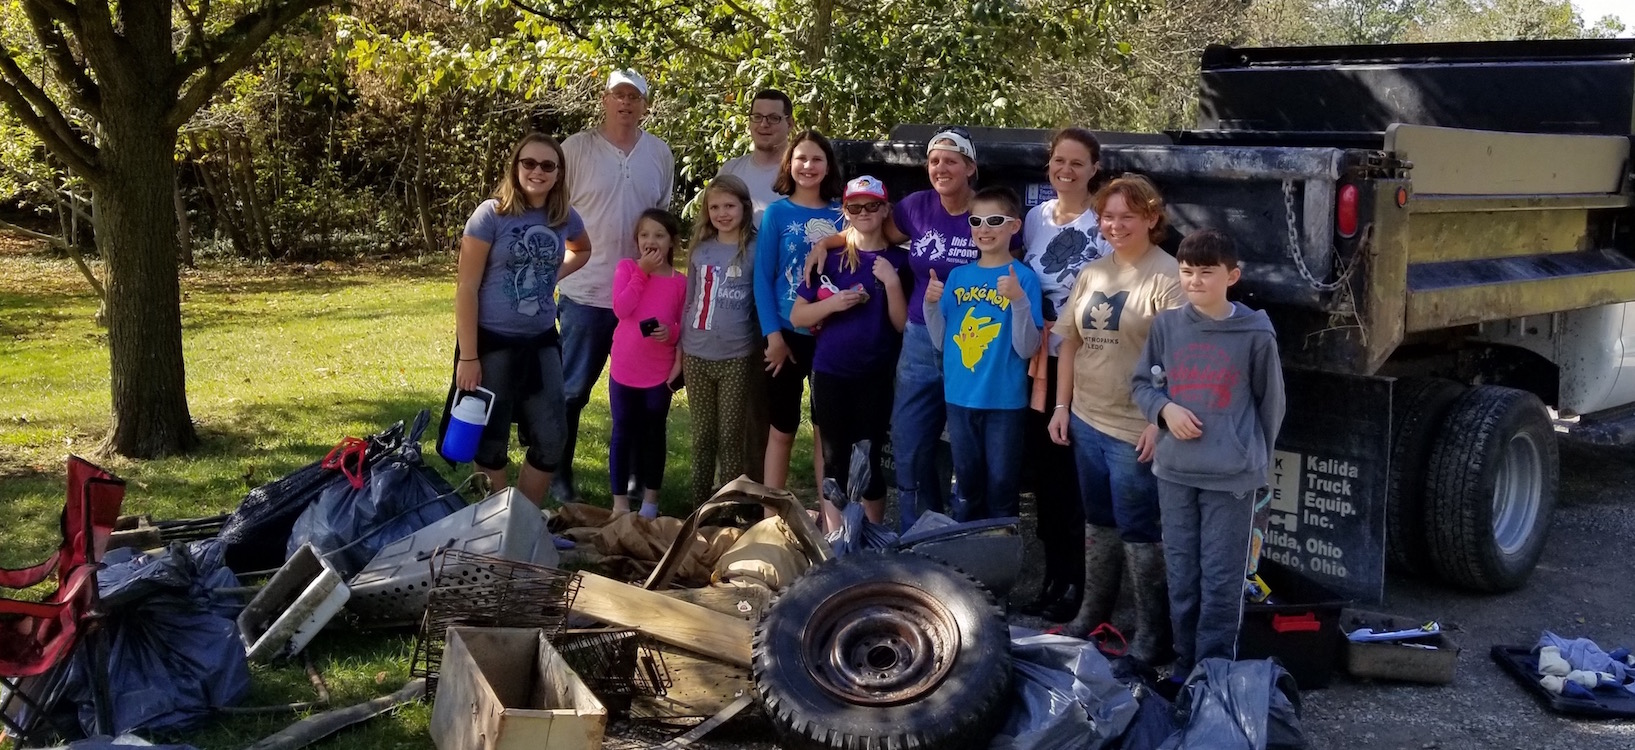 Sign up for a CYS 365!